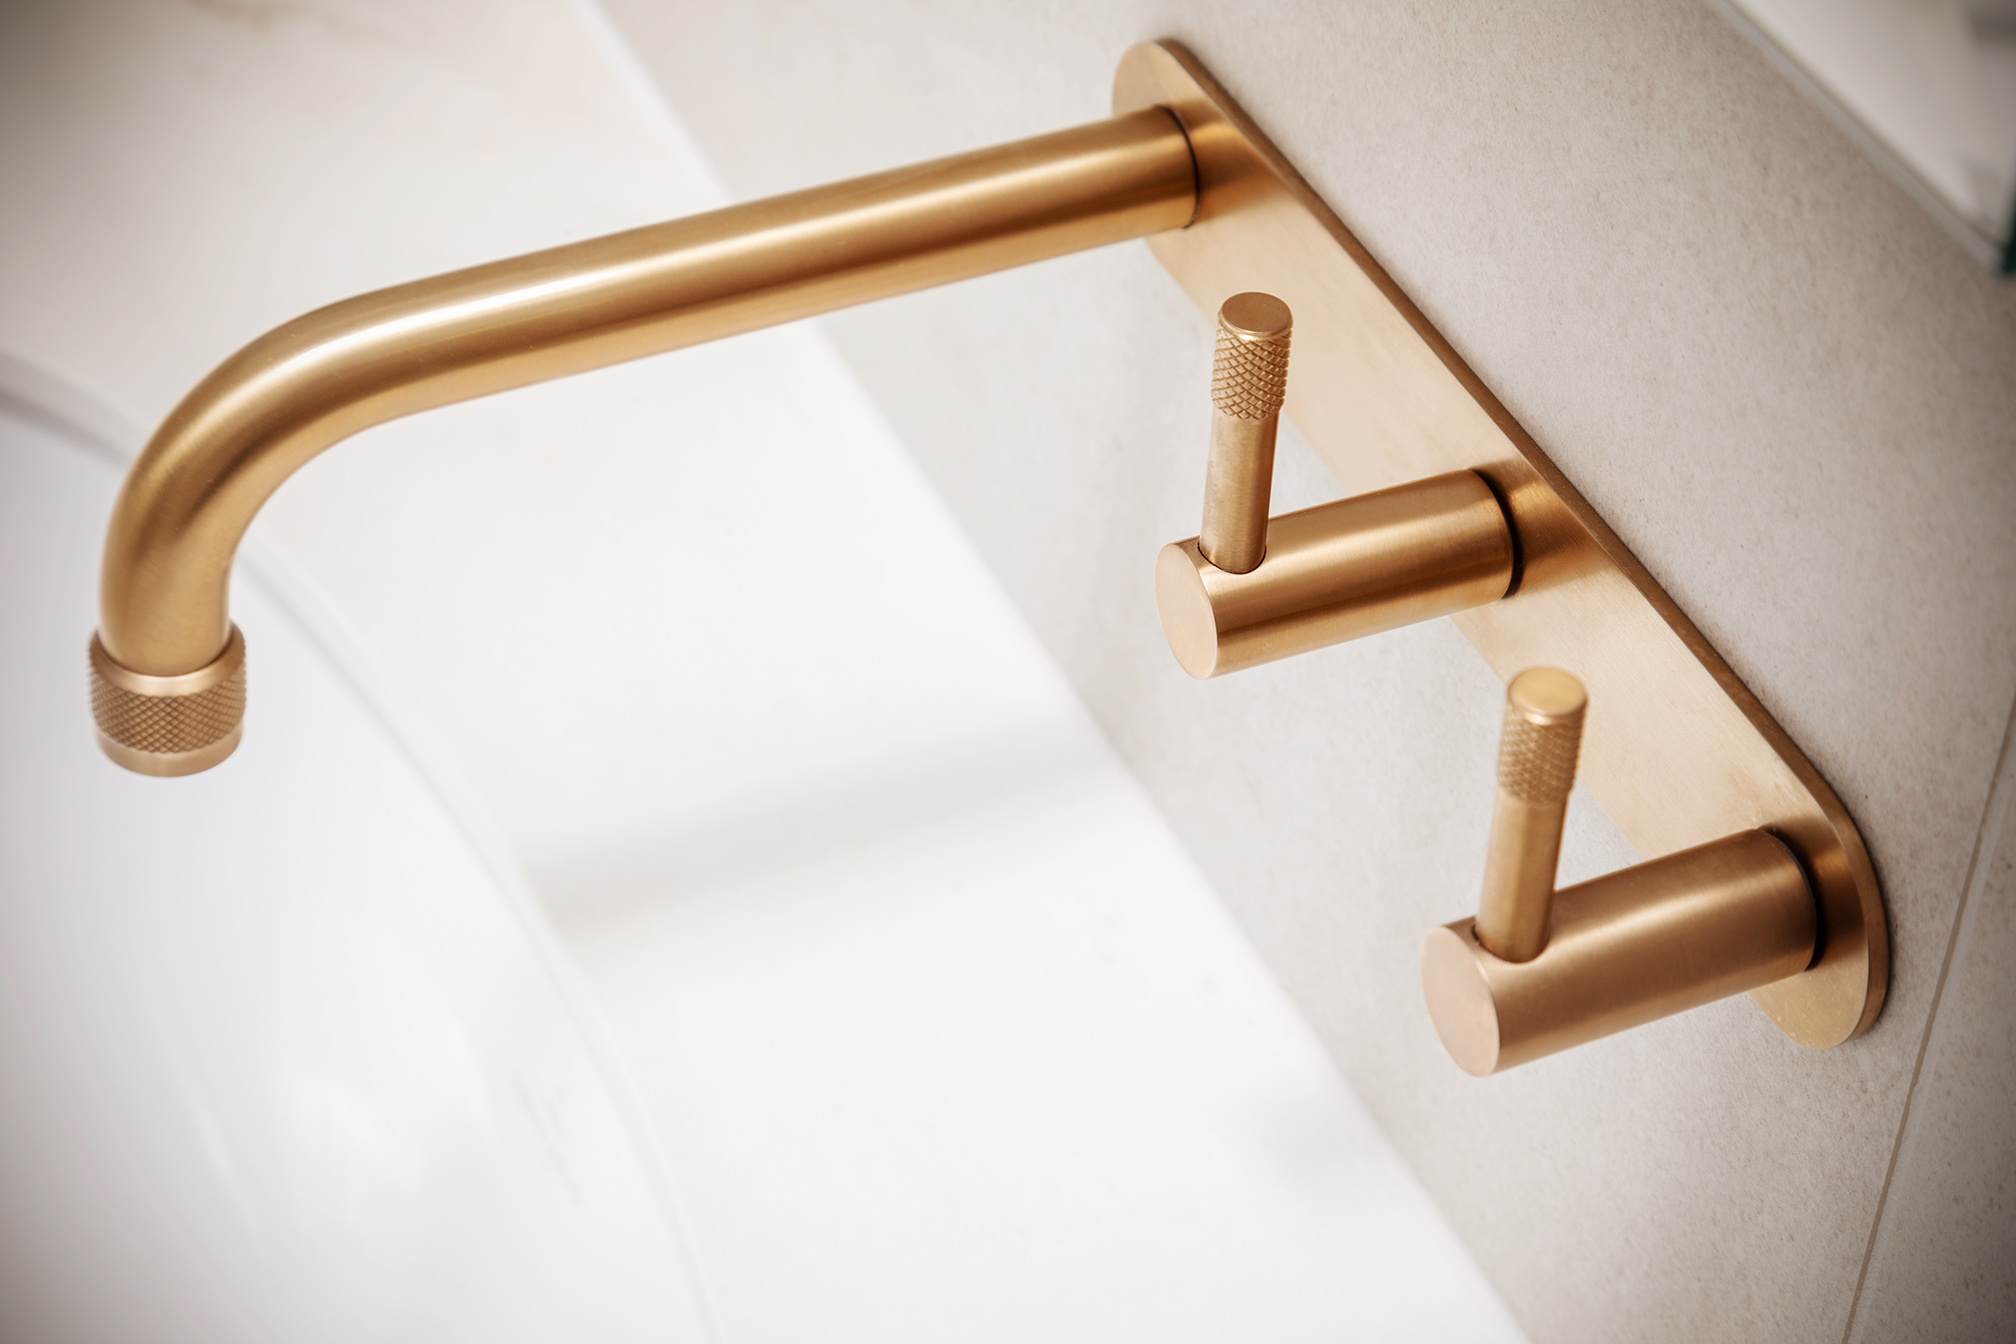 Mount Lawley Traditional Skylit Ensuite - Close up of brass tapware